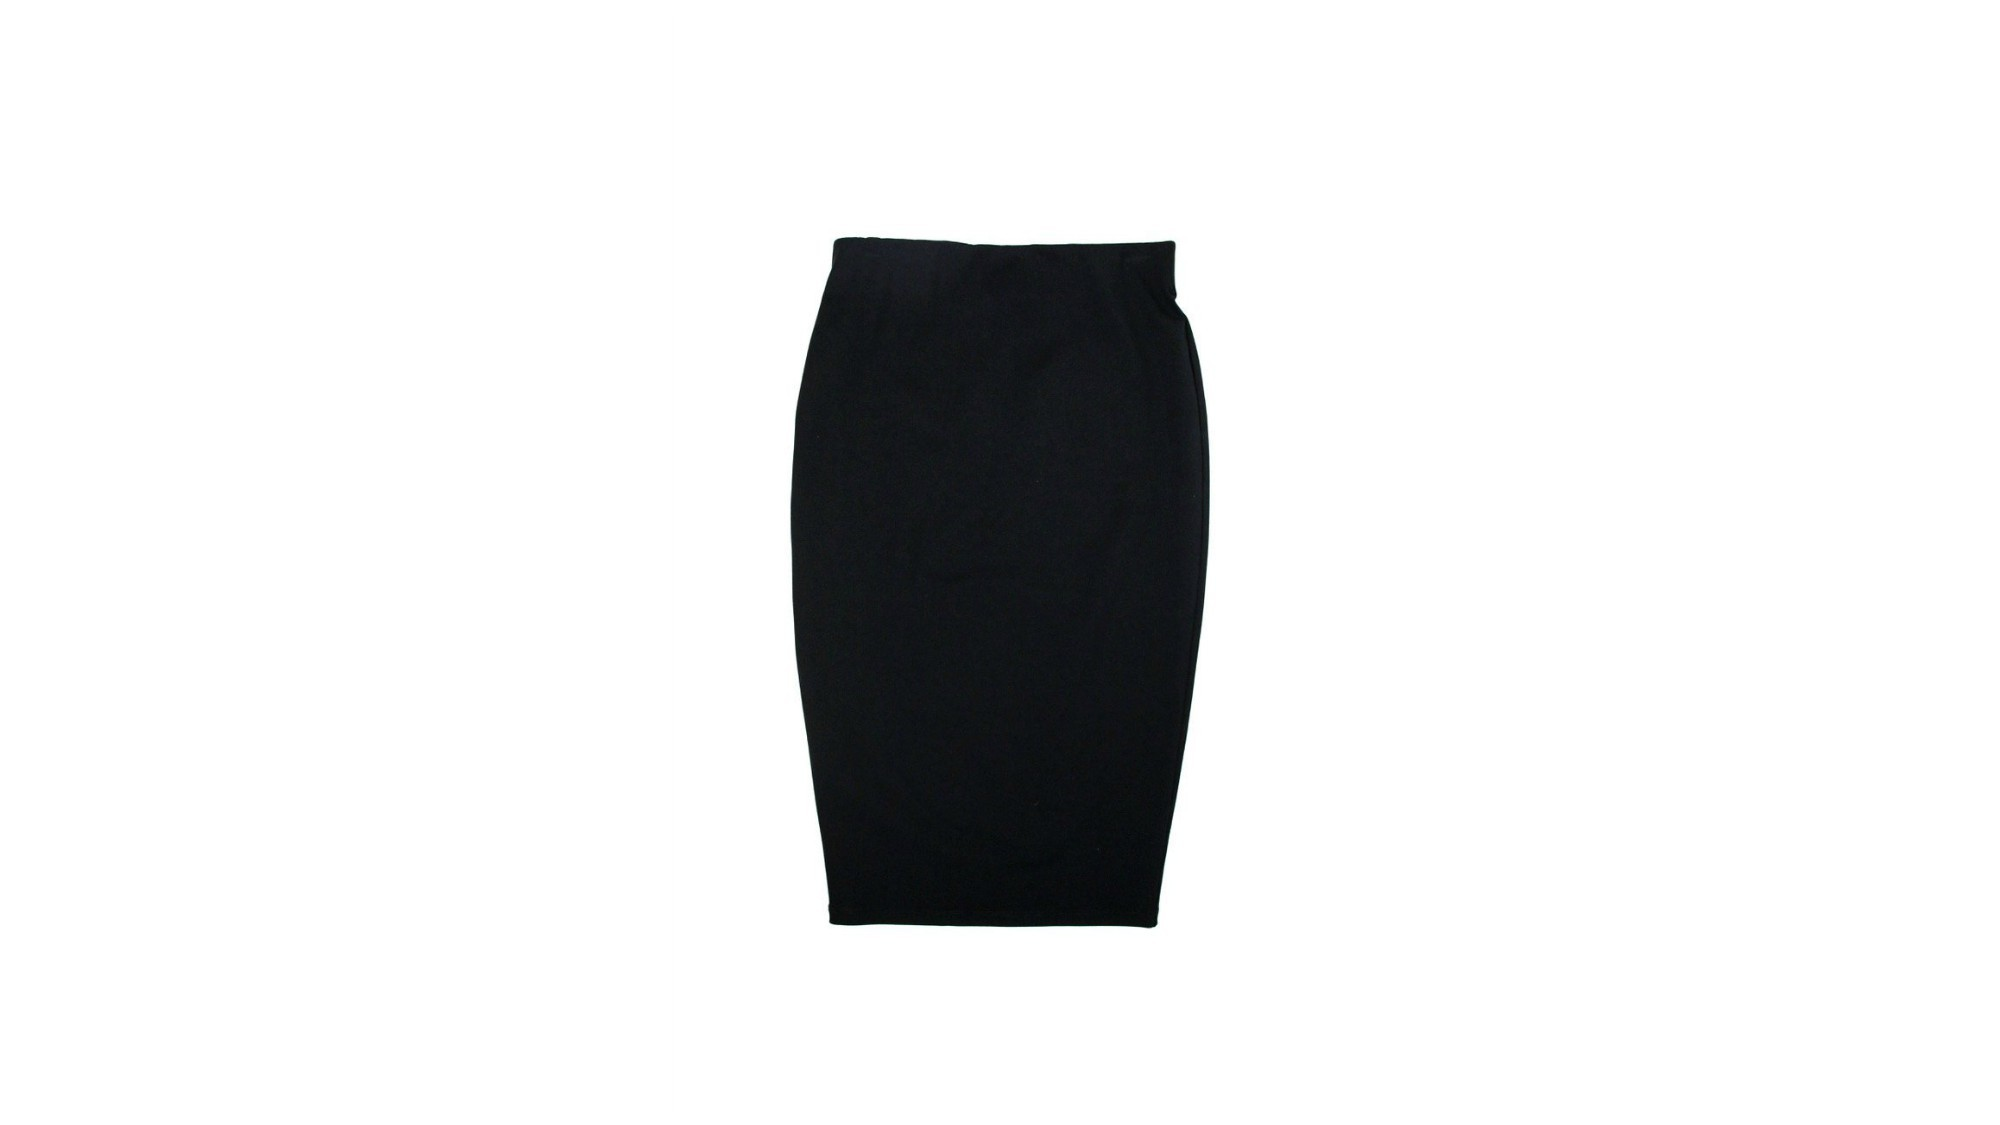 A stretch pencil skirt from David Lerner New York provides fit without feeling restrictive and will look modern with a pussy-bow blouse or neat cropped jacket.